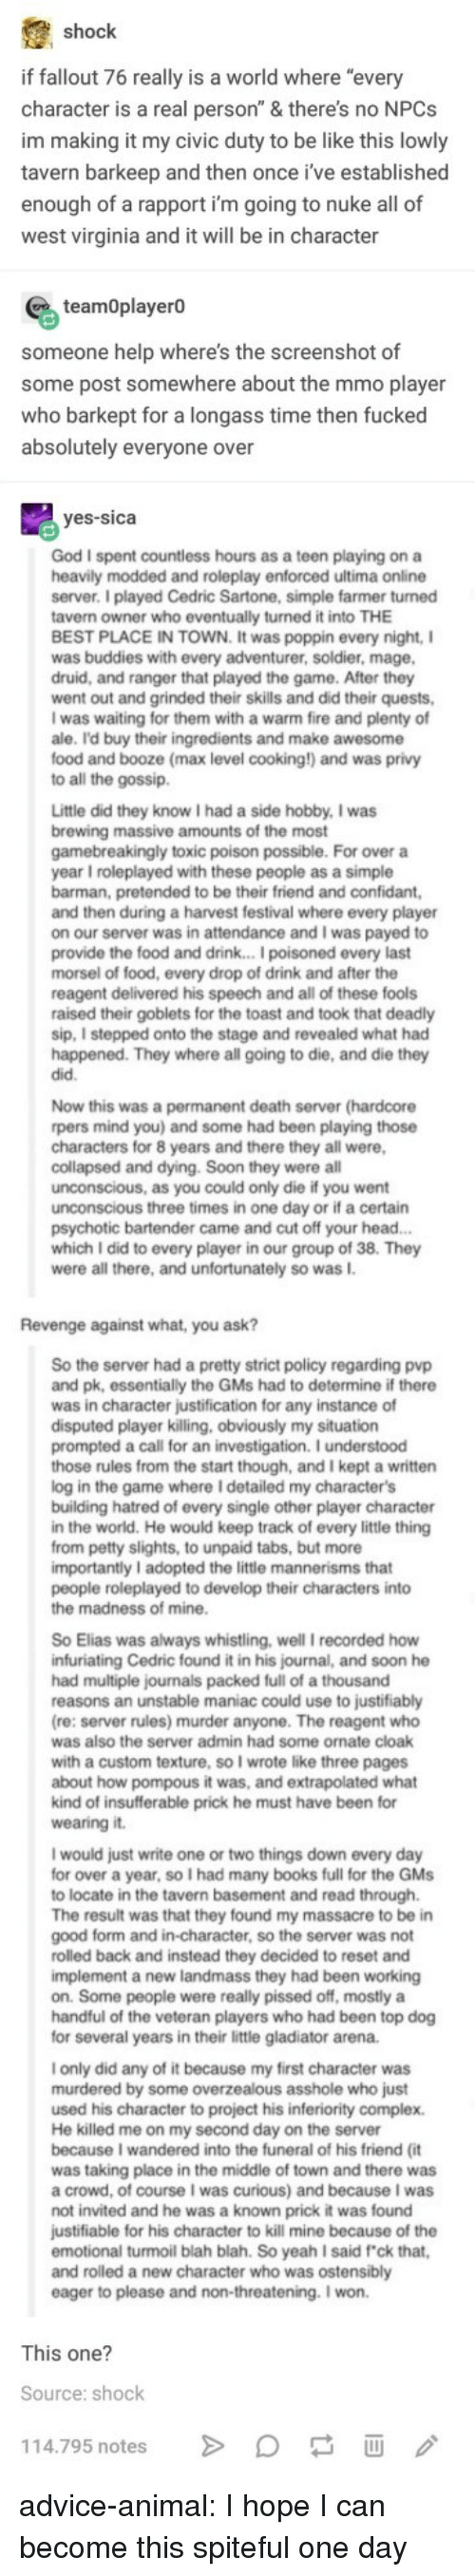 """Advice, Be Like, and Books: shock  if fallout 76 really is a world where """"every  character is a real person"""" & there's no NPCs  im making it my civic duty to be like this lowly  tavern barkeep and then once i've established  enough of a rapport i'm going to nuke all of  west virginia and it will be in character  teamOplayerO  someone help where's the screenshot of  some post somewhere about the mmo player  who barkept for a longass time then fucked  absolutely everyone over  yes-sica  God I spent countless hours as a teen playing on a  heavily modded and roleplay enforced ultima online  server. I played Cedric Sartone, simple farmer turned  tavern owner who eventually turned it into THE  BEST PLACE IN TOWN. It was poppin every night, I  was buddies with every adventurer, soldier, mage  druid, and ranger that played the game. After they  went out and grinded their skills and did their quests,  I was waiting for them with a warm fire and plenty of  ale. I'd buy their ingredients and make awesome  food and booze (max level cooking!) and was privy  to all the gossip.  Little did they know I had a side hobby, I was  brewing massive amounts of the most  gamebreakingly toxic poison possible. For over a  year I roleplayed with these people as a simple  barman, pretended to be their friend and confidant  and then during a harvest festival where every player  on our server was in attendance and I was payed to  provide the food and drink... I poisoned every last  morsel of food, every drop of drink and after the  reagent delivered his speech and all of these fools  raised their goblets for the toast and took that deadly  sip, I stepped onto the stage and revealed what had  happened. They where all going to die, and die they  did.  Now this was a permanent death server (hardcore  rpers mind you) and some had been playing those  characters for 8 years and there they all were  collapsed and dying. Soon they were all  unconscious, as you could only die if you went  unconscious thr"""